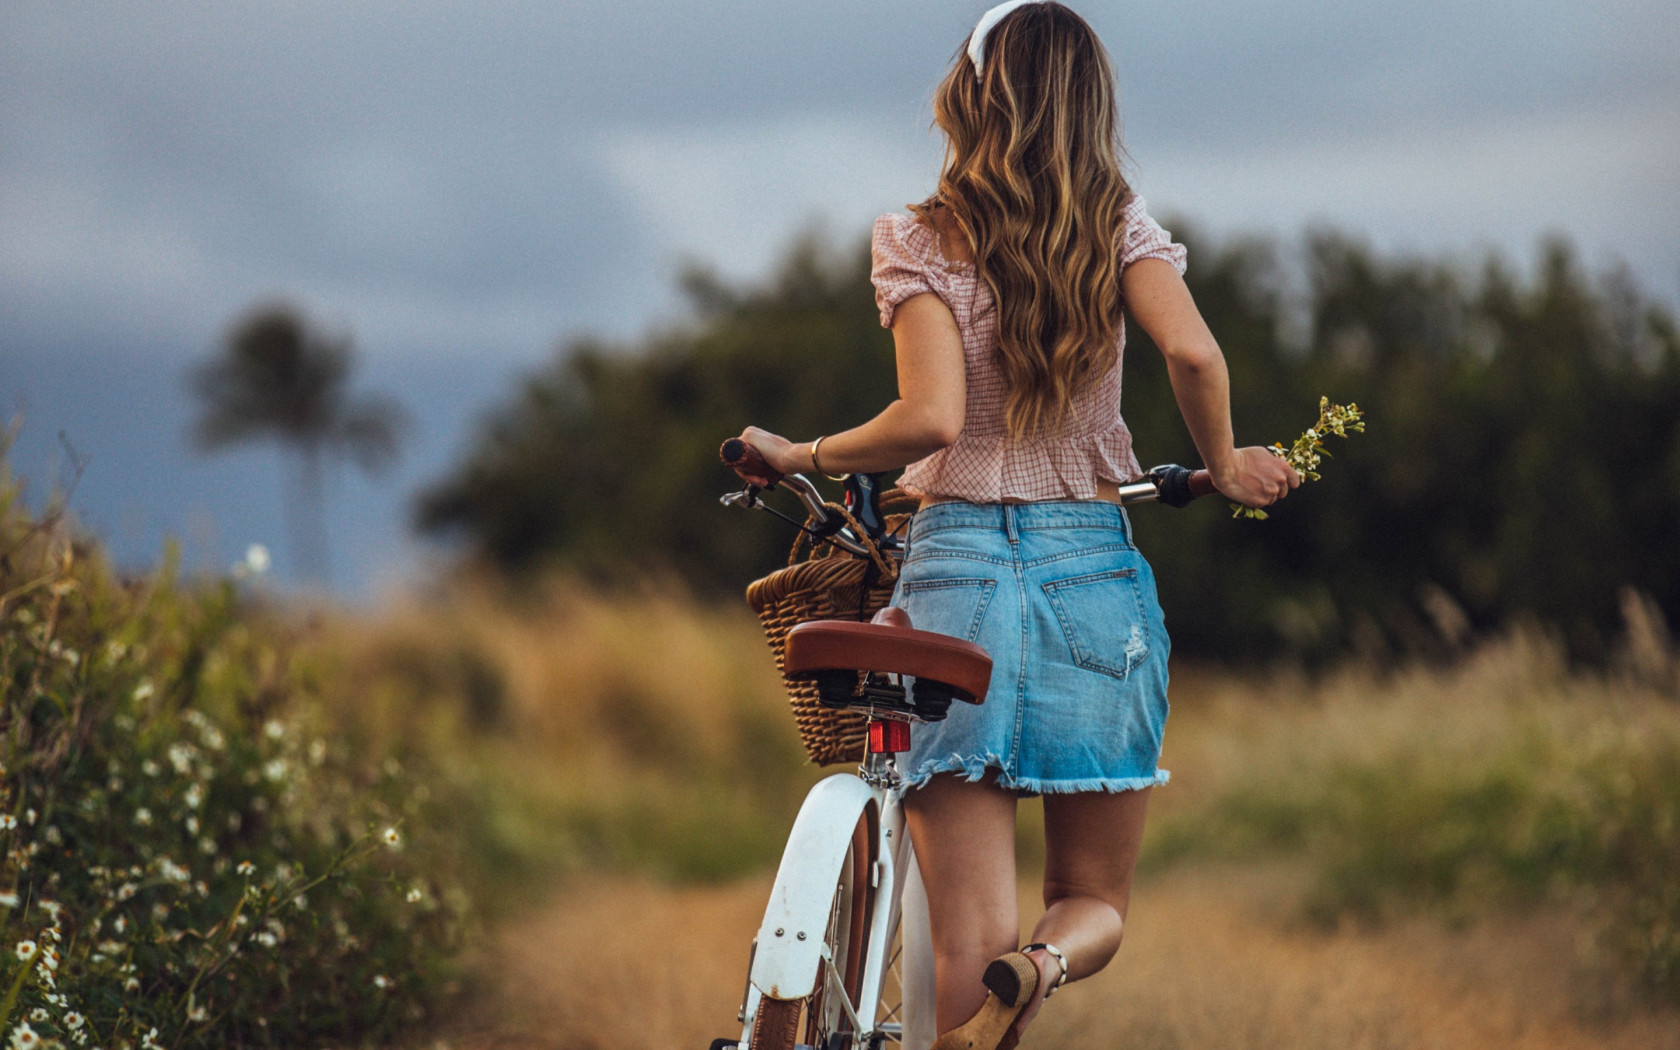 Lady with her retro bike wallpaper 1680x1050